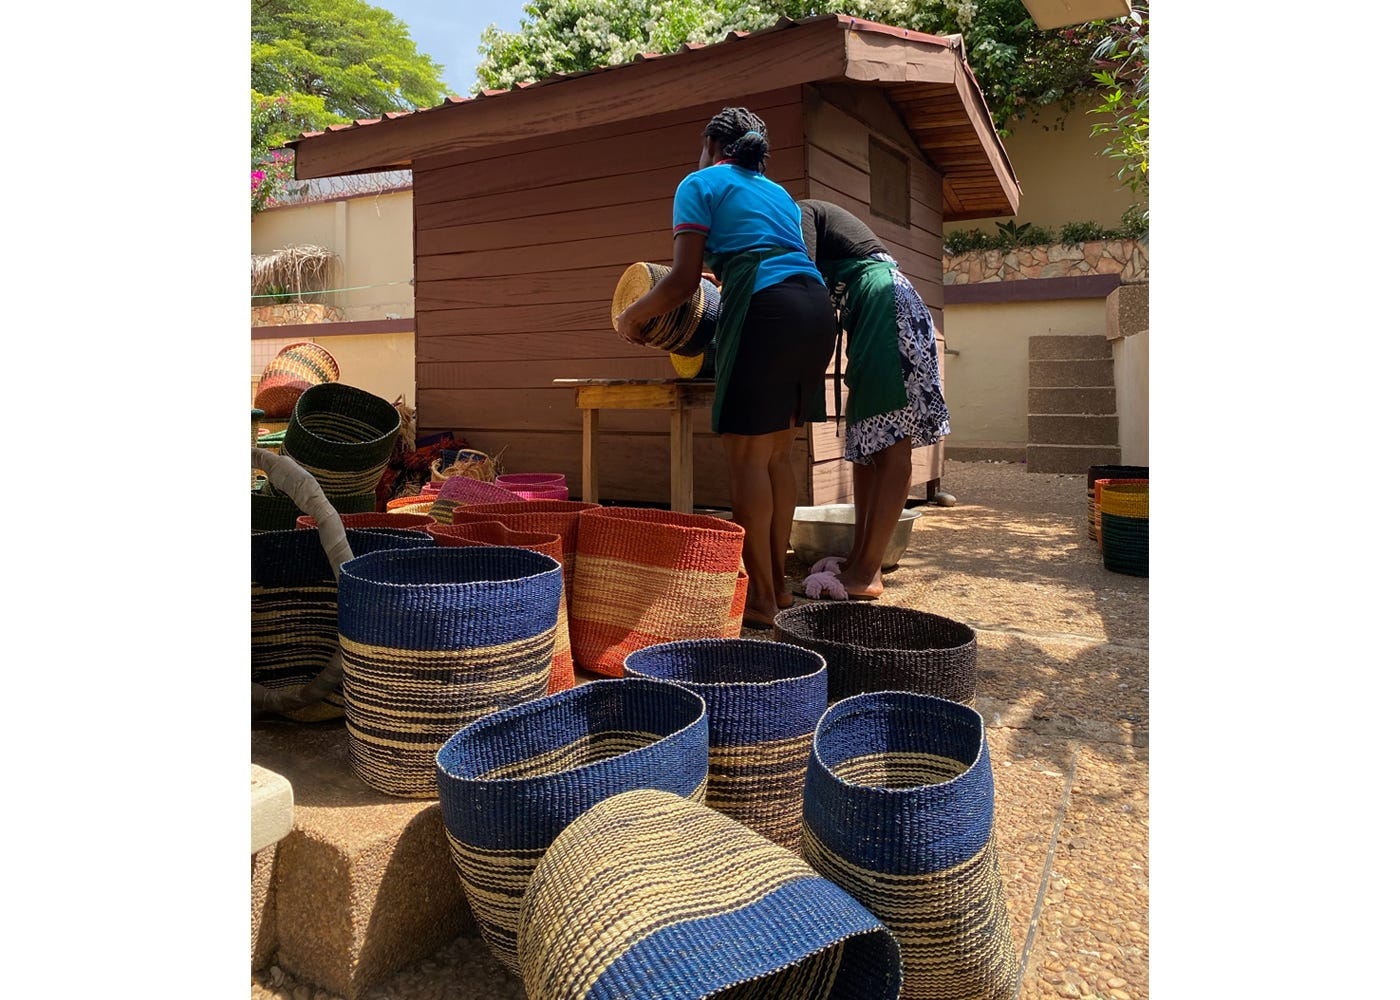 Akosua Afriyie-Kumi works with other artisans in small villages to create this collection of handwoven baskets